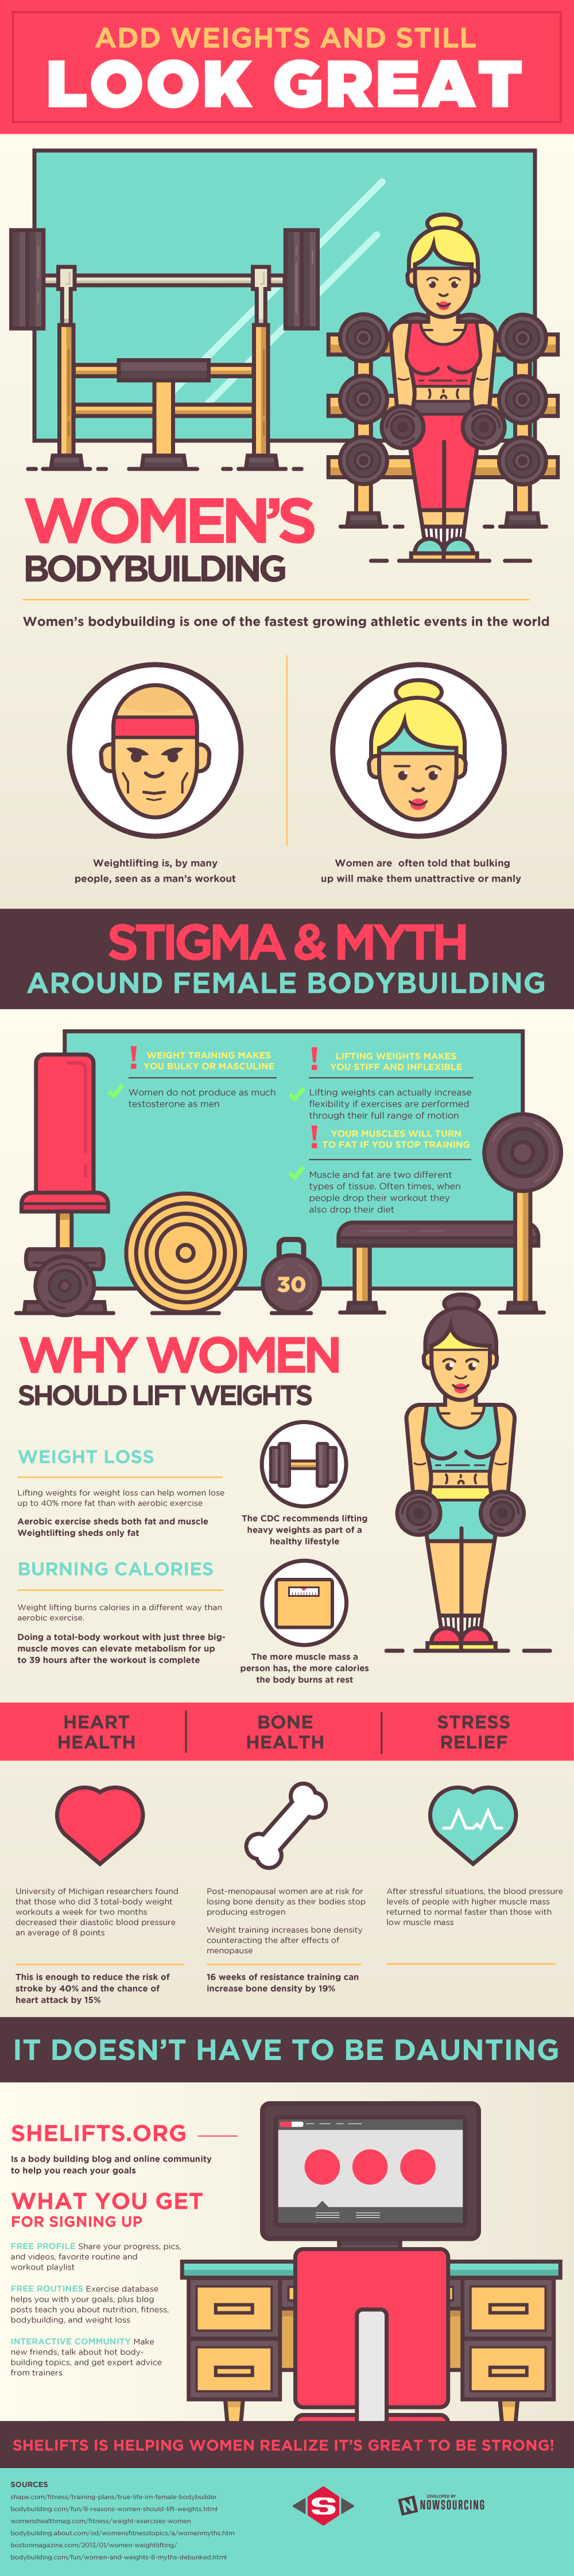 Common myths about female bodybuilding